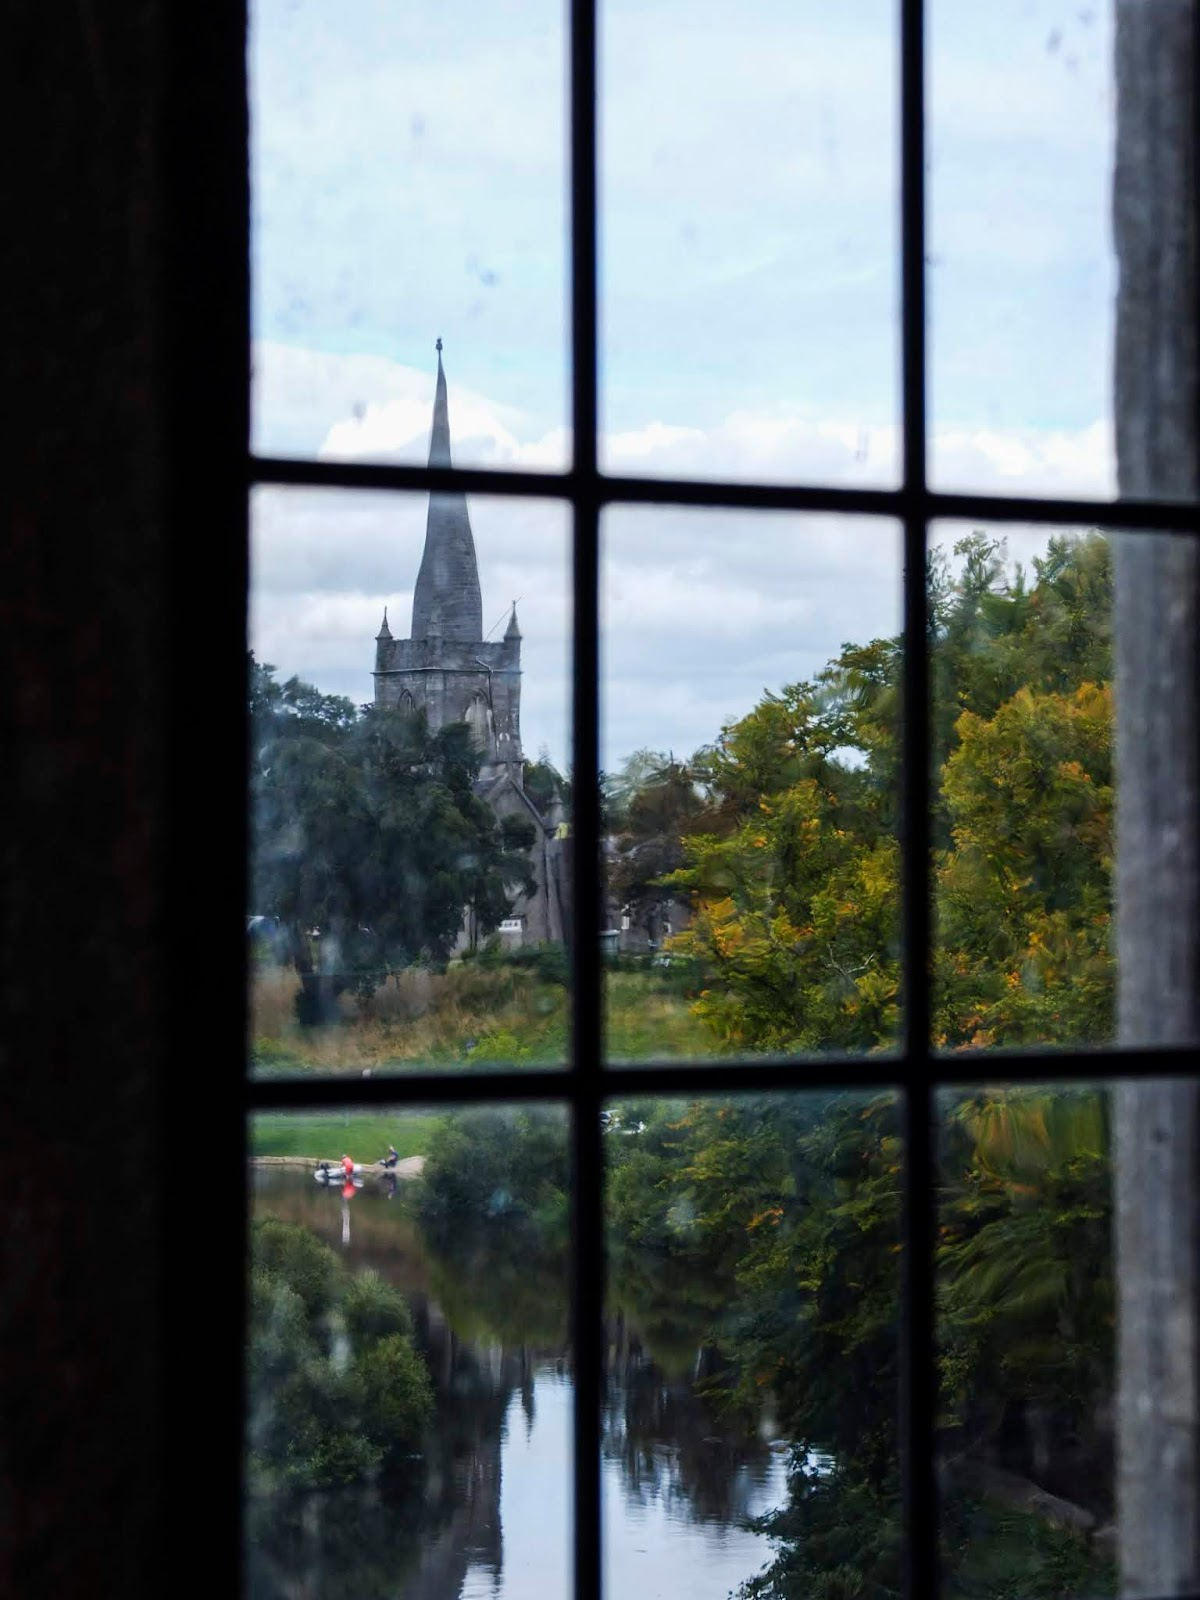 View from a window in the Cahir Castle, Co.Tipperary.